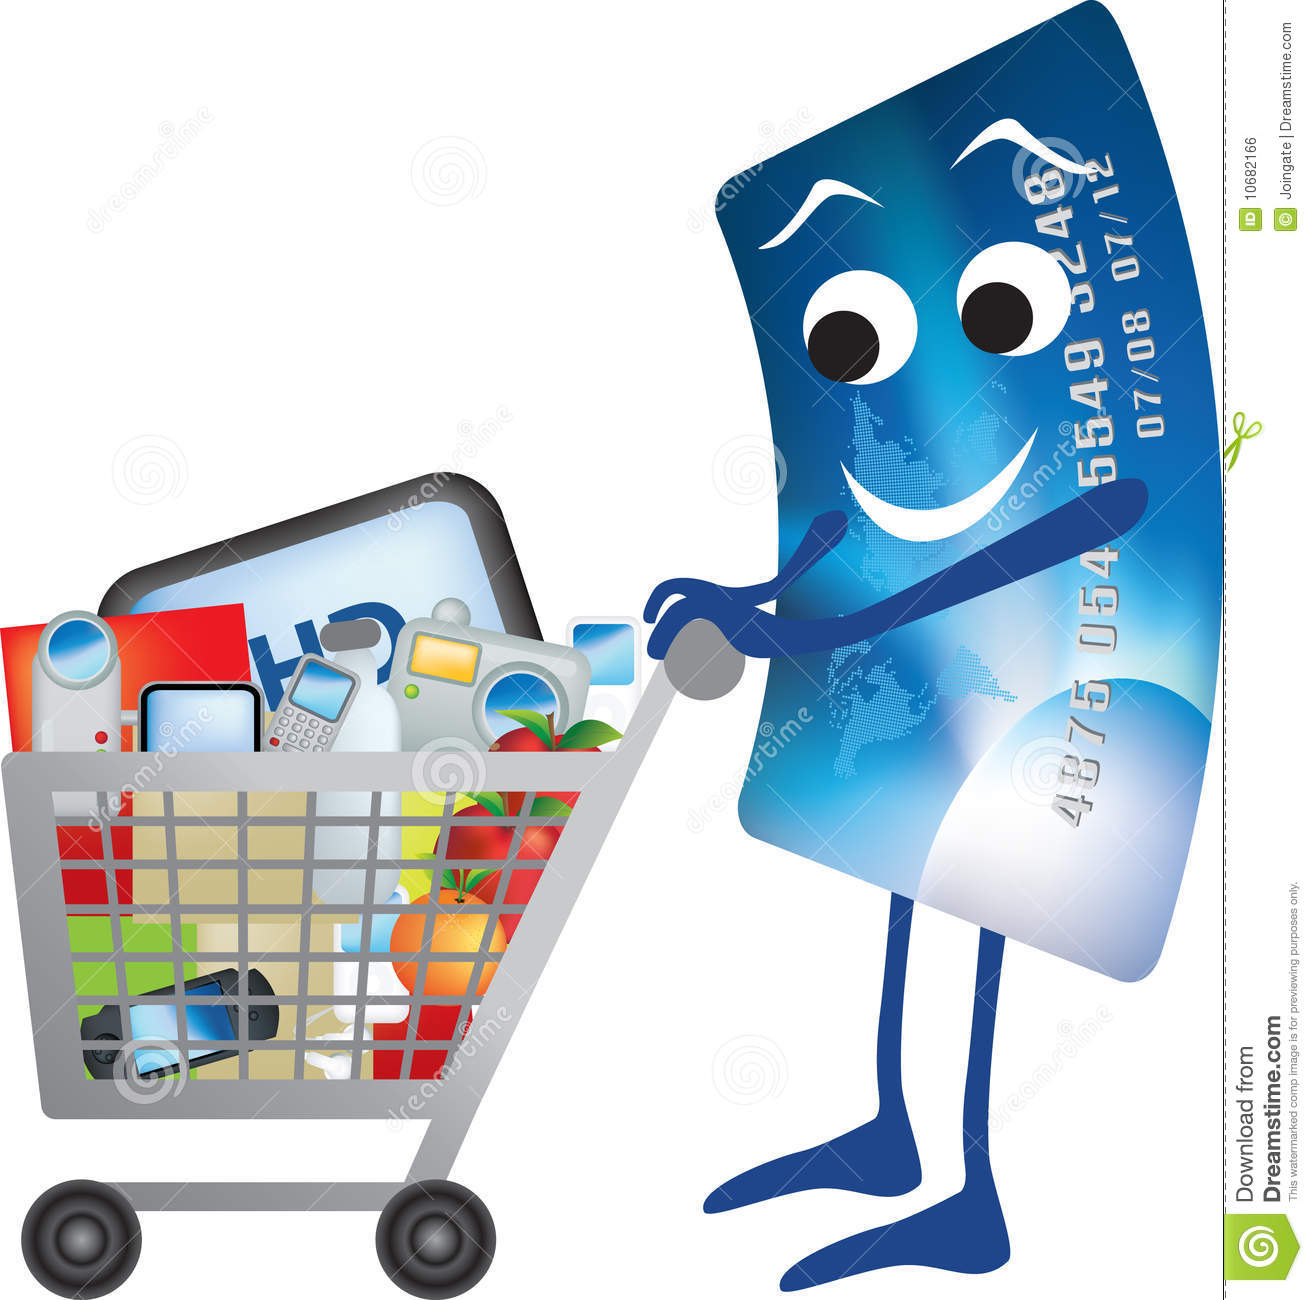 Credit card and shopping trolley cartoon stock vector illustration of cash spend 10682166 - Shopping cash card paying spending ...